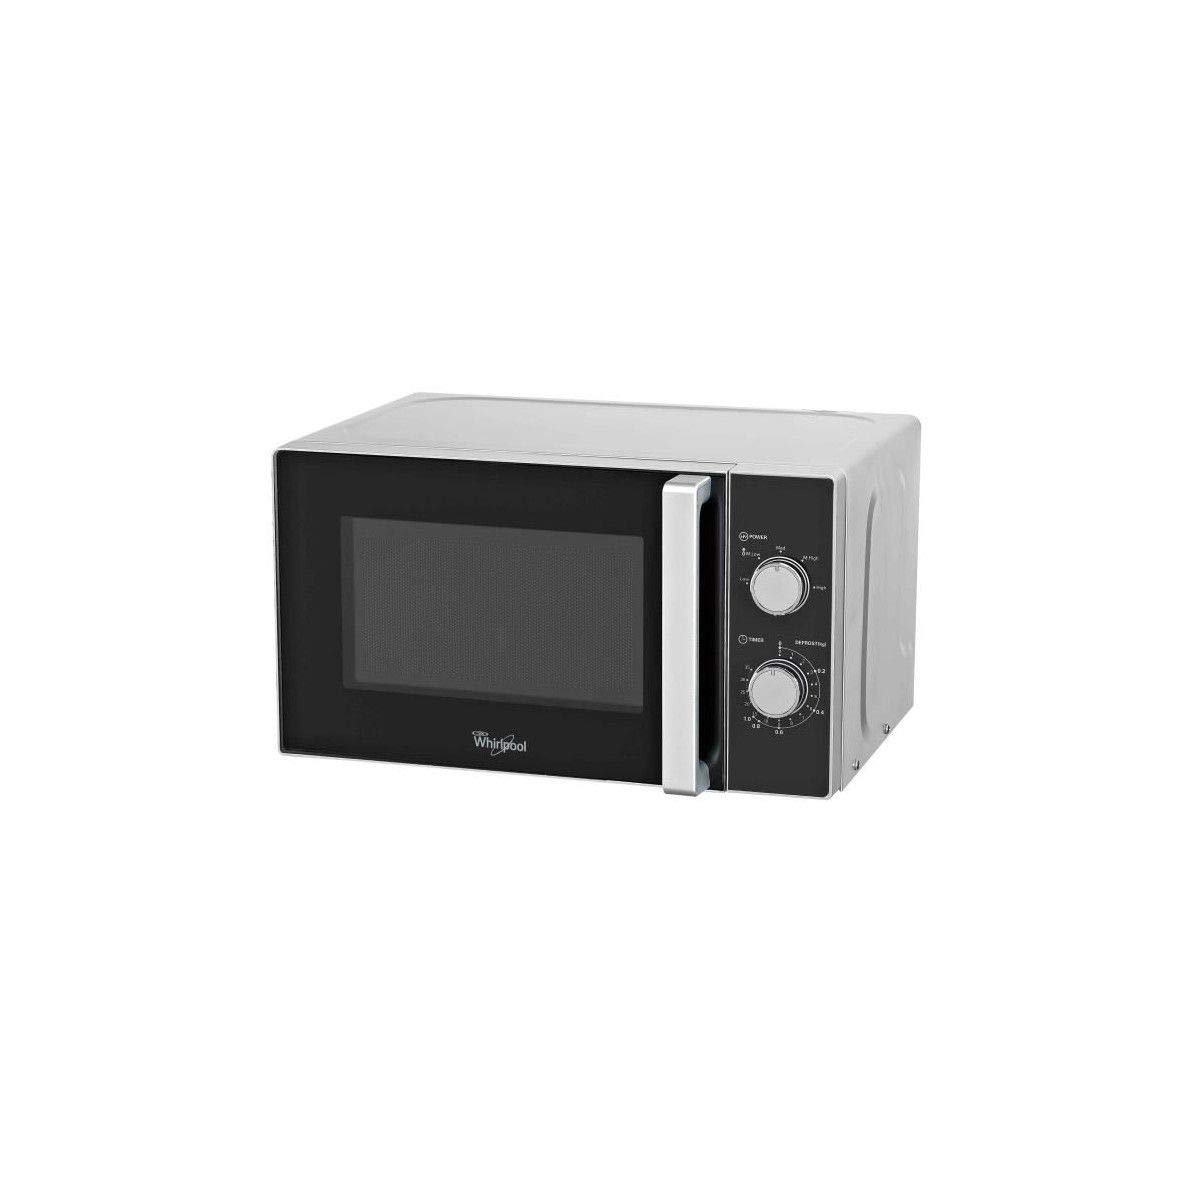 WHIRLPOOL MWO618SL Micro-ondes Grill: Amazon.es: Grandes ...